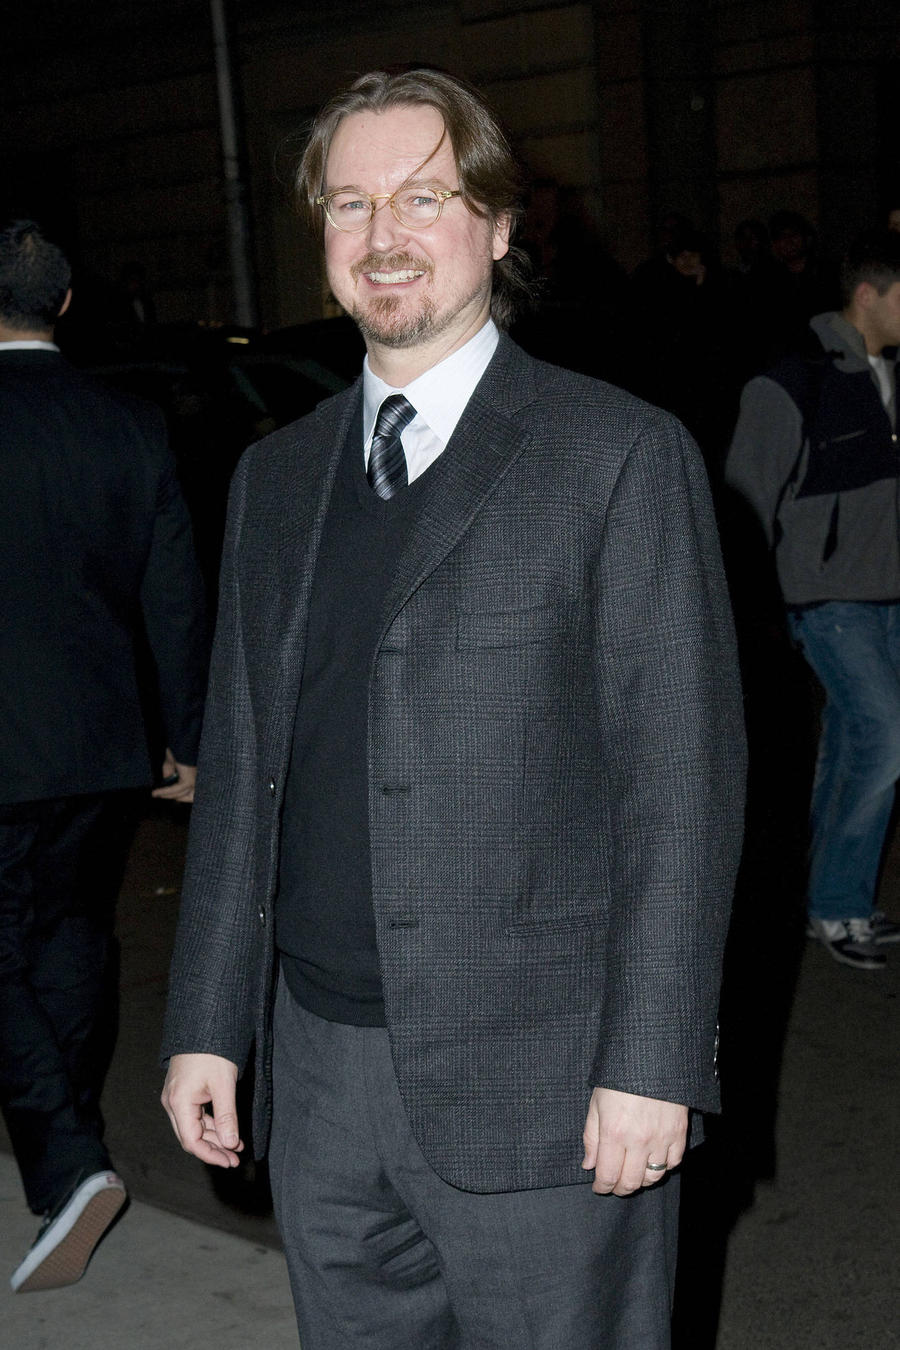 Matt Reeves Takes The Lead In Battle To Direct The Batman